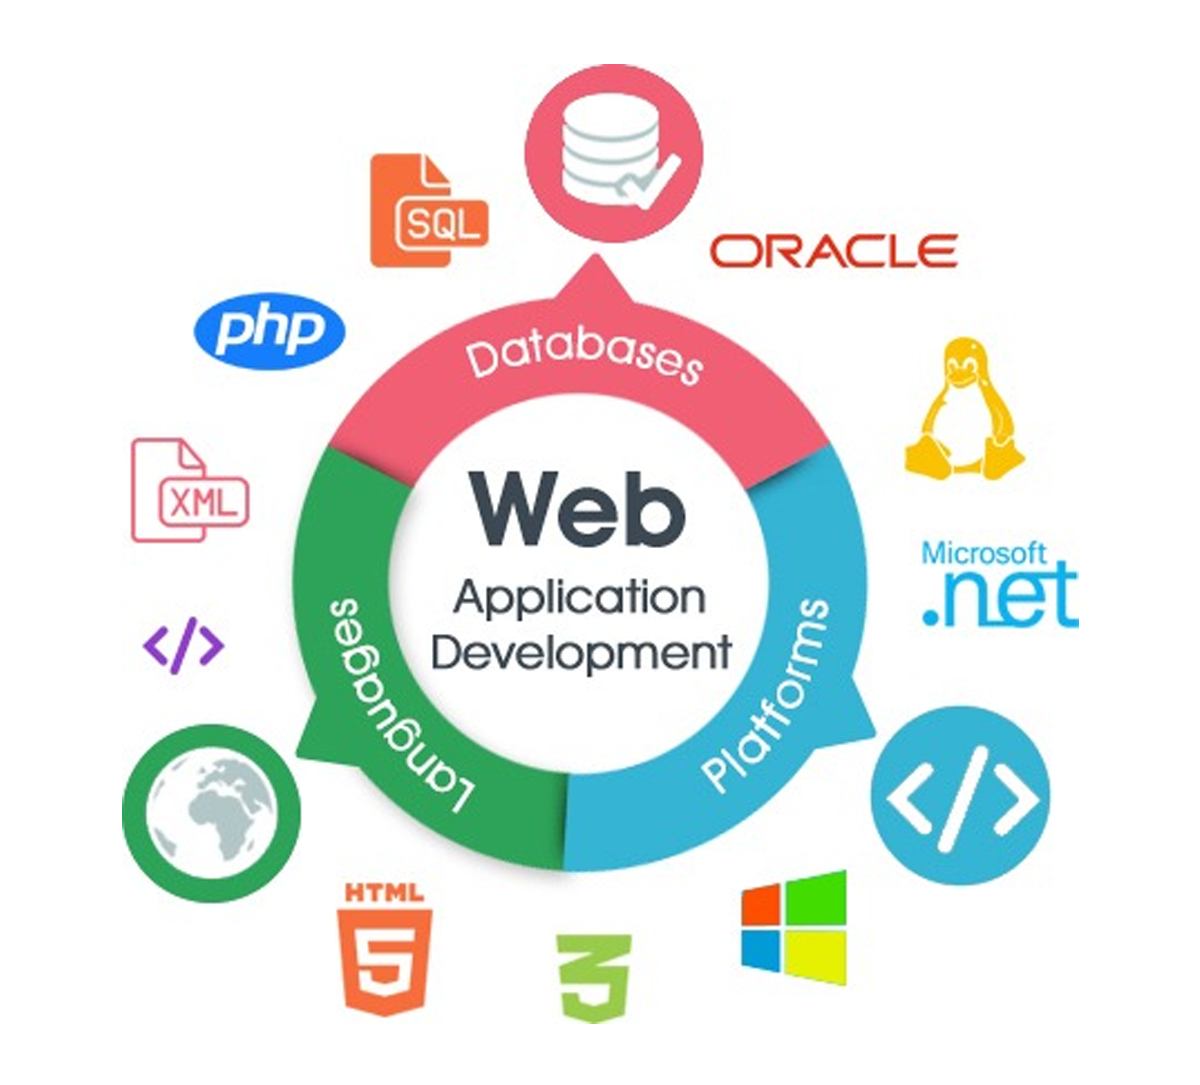 https://arksstech.com/wp-content/upload/2018/06/web-development-application.png